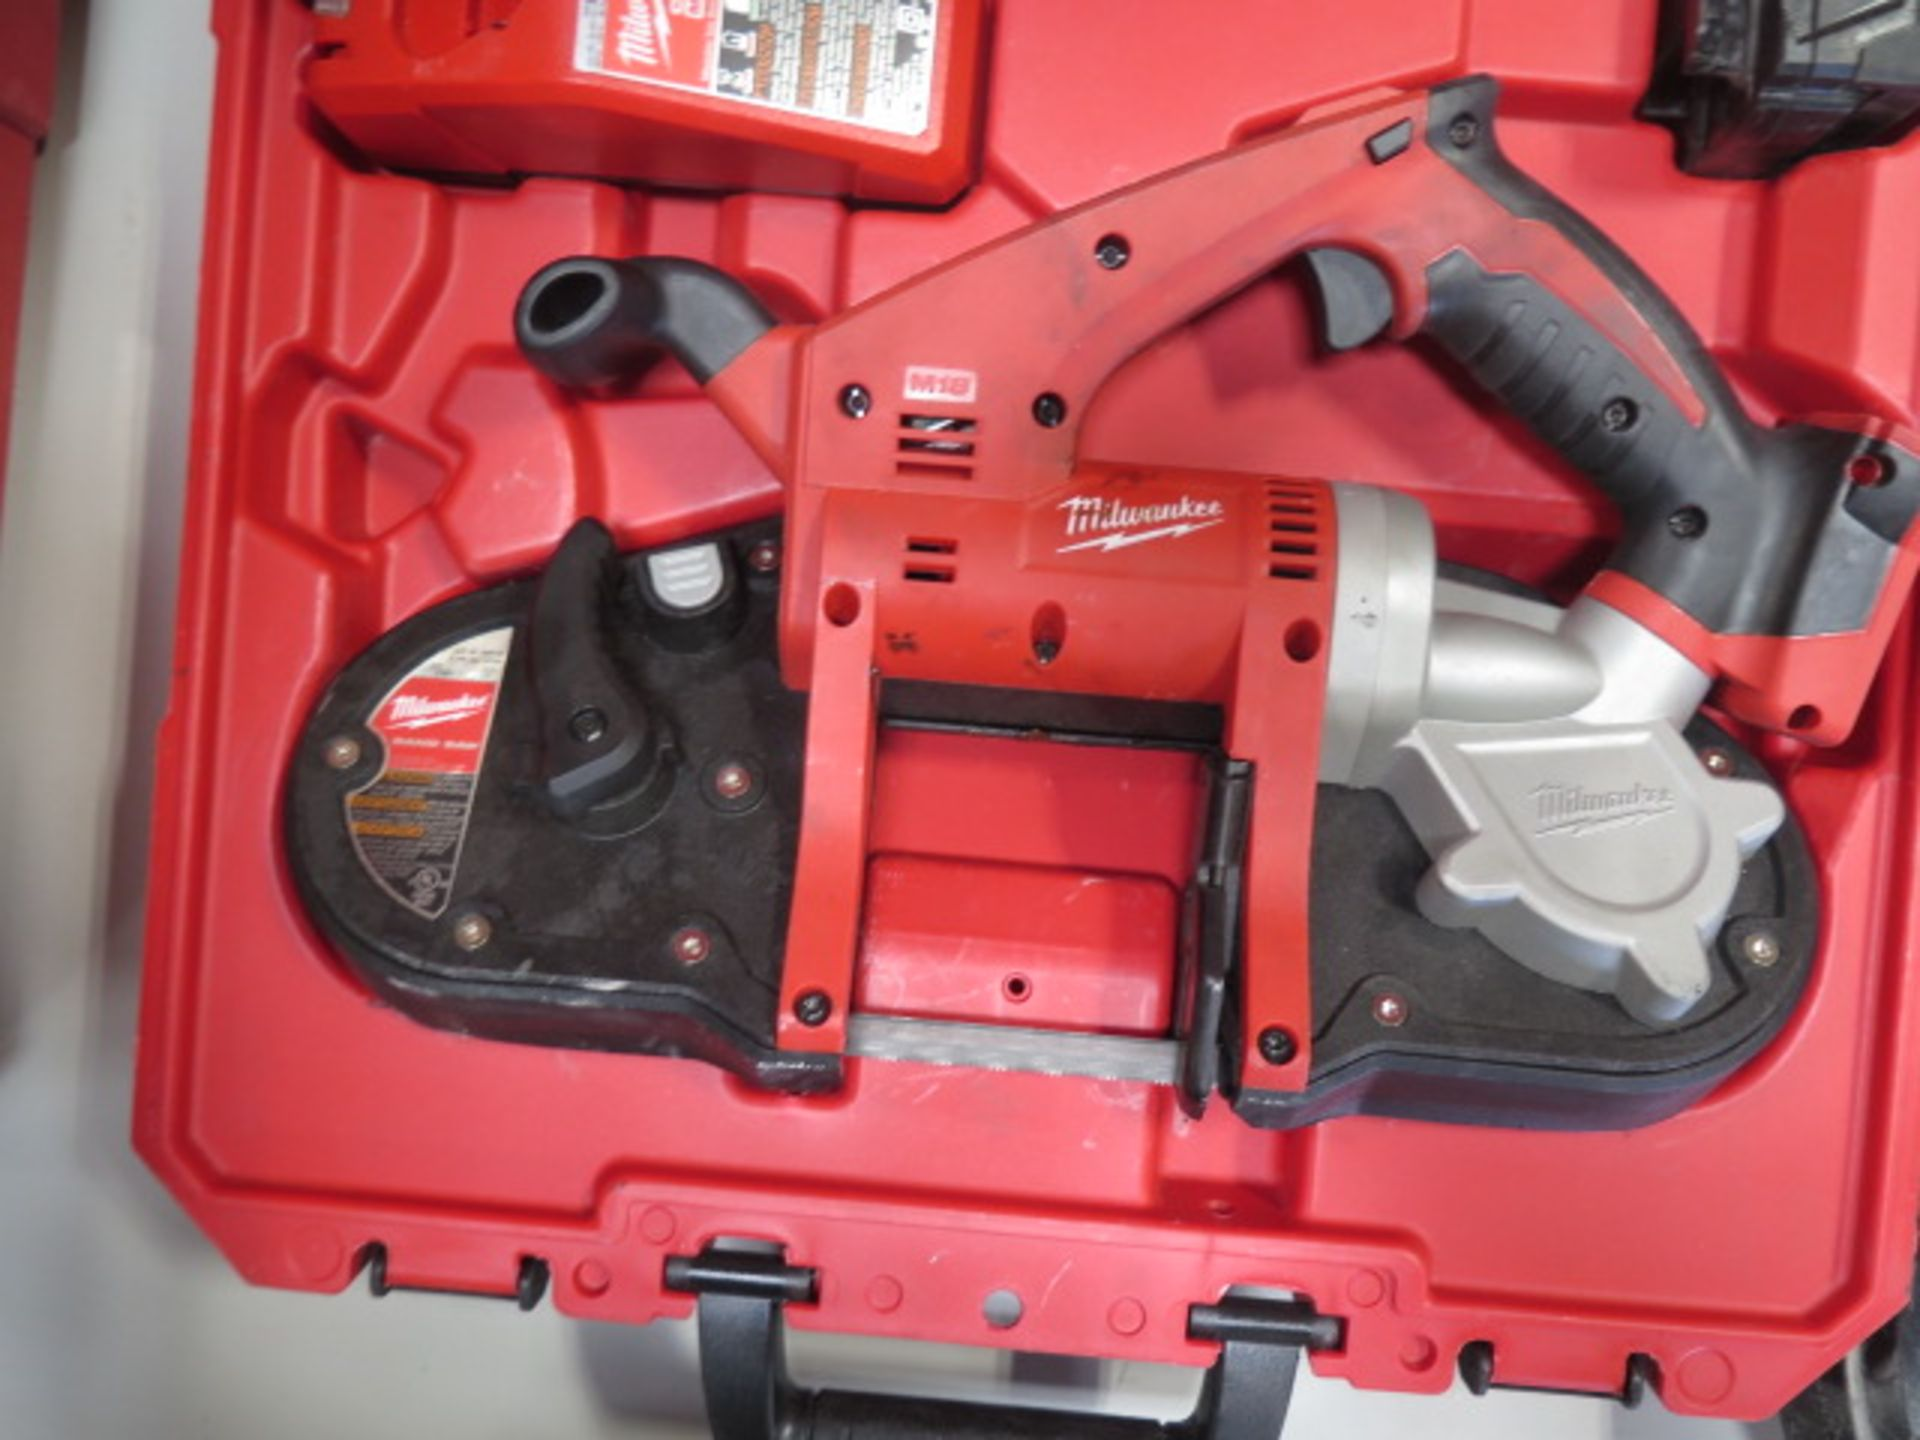 Milwaukee 18 Volt Compact Portable Band Saw Sets (2) (SOLD AS-IS - NO WARRANTY) - Image 8 of 10